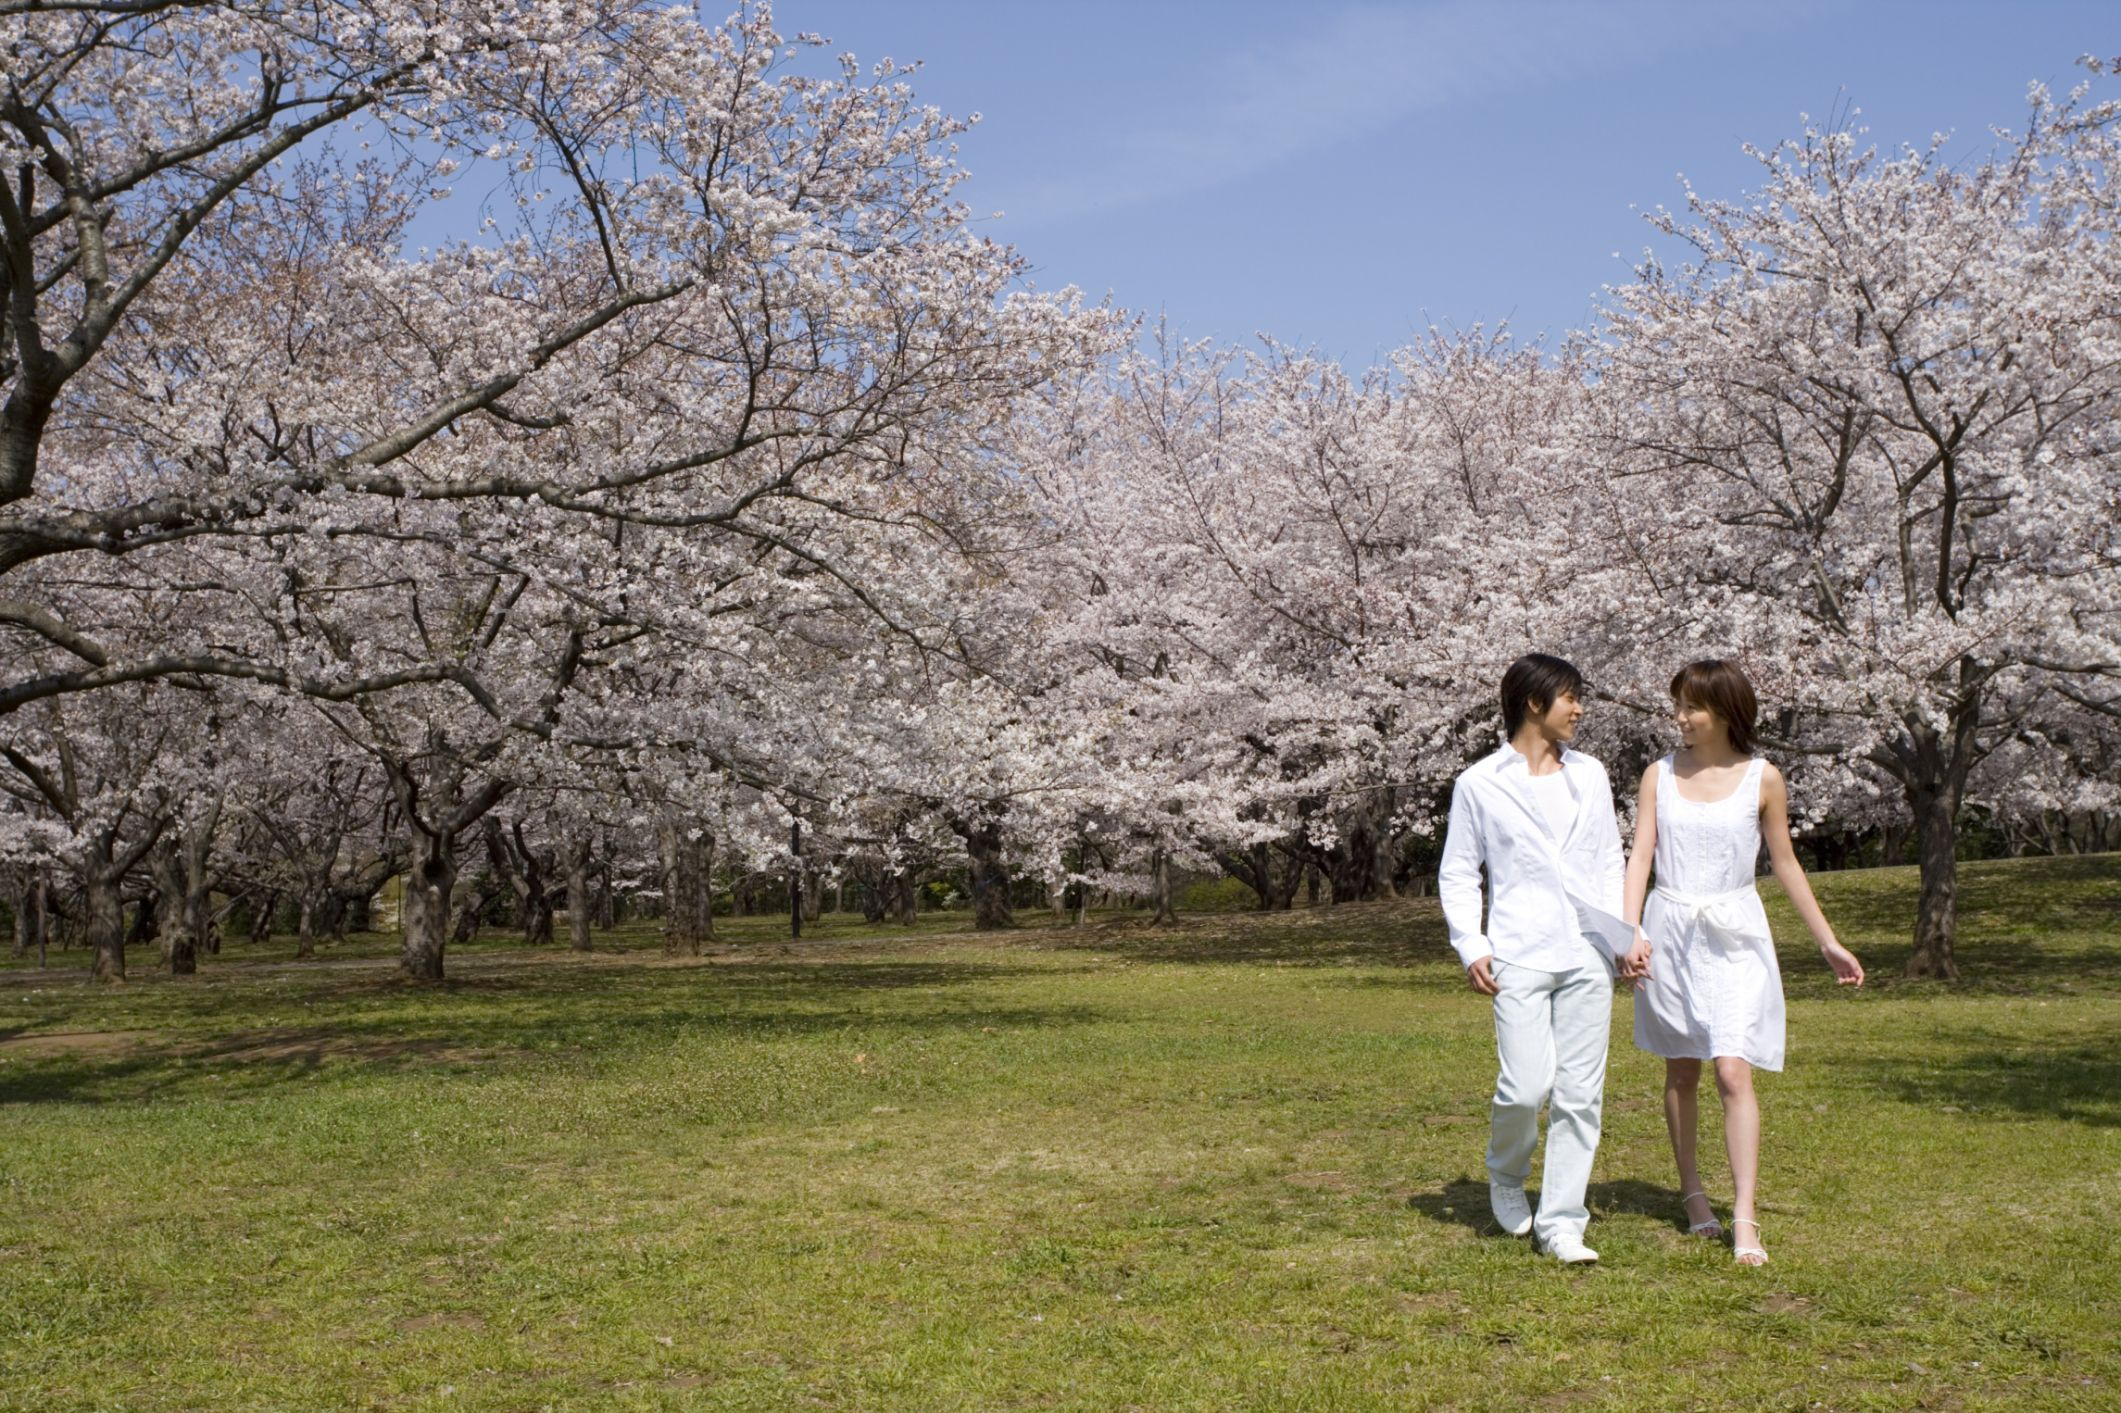 Man and woman walking through cherry blossoms.